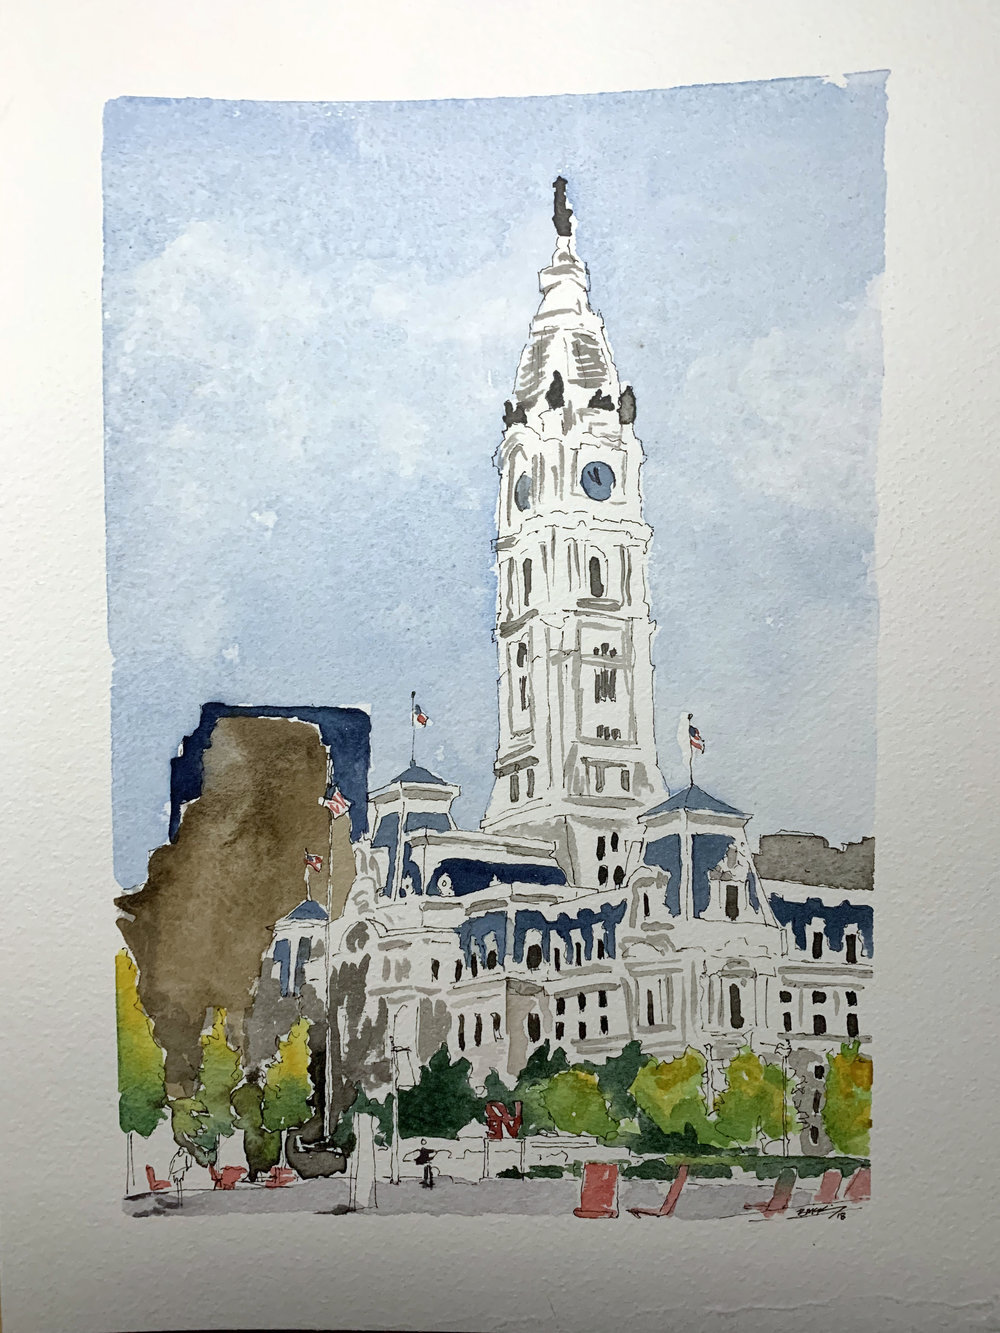 City Hall from Love Park, 9x12 inches, watercolor, ink wash and pen on 140lb, Feb 2019